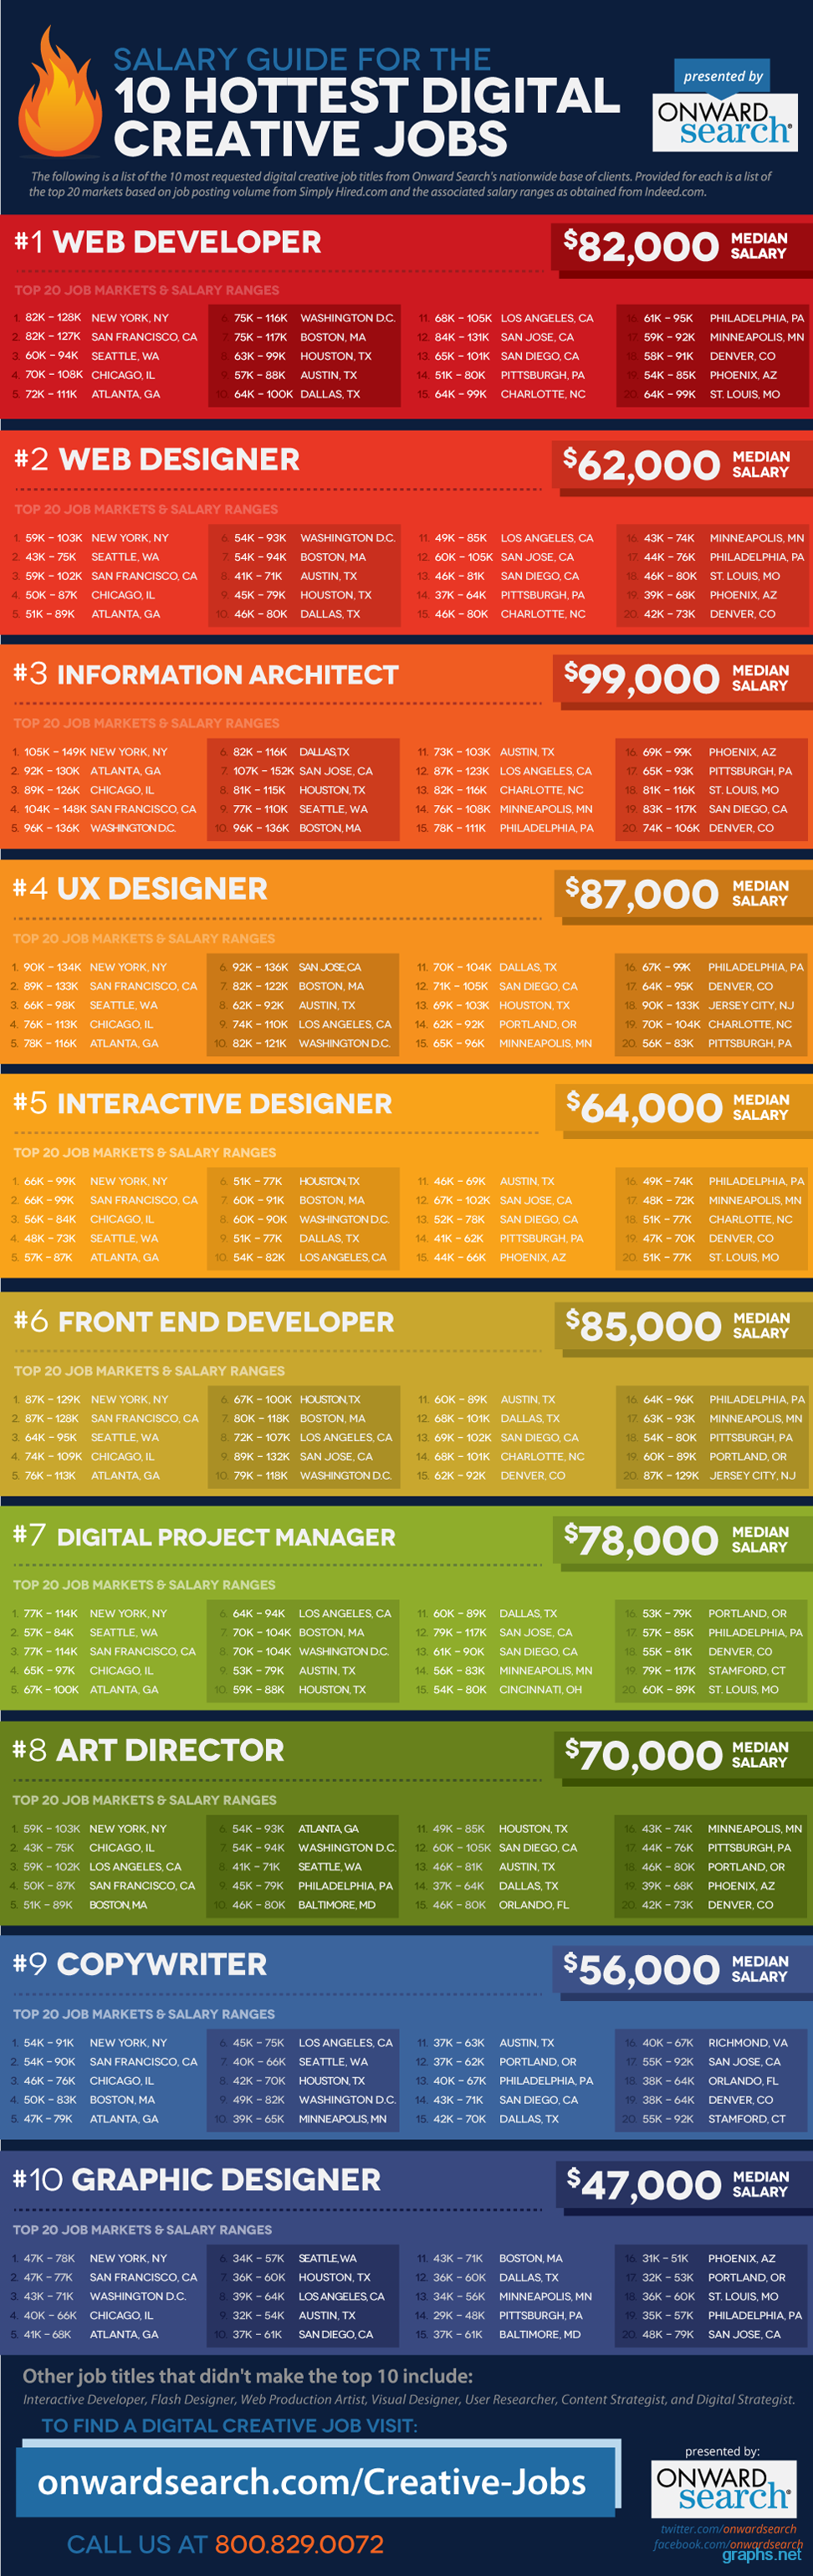 Salary Guide for Digital Creative Jobs